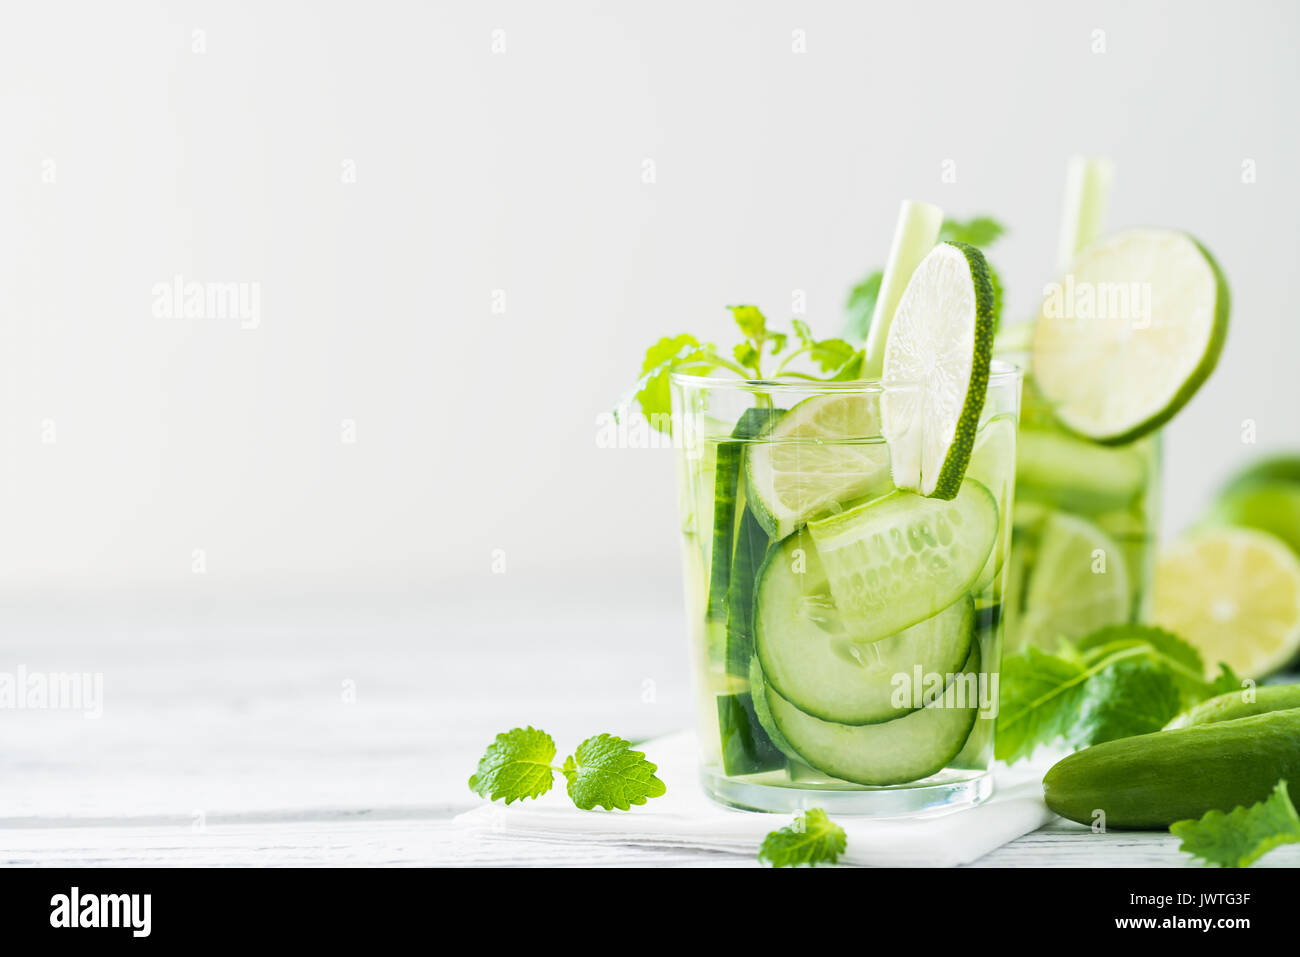 Refreshing drink with cucumber, lime, mint. Detox concept. White rustic table. Copy space - Stock Image